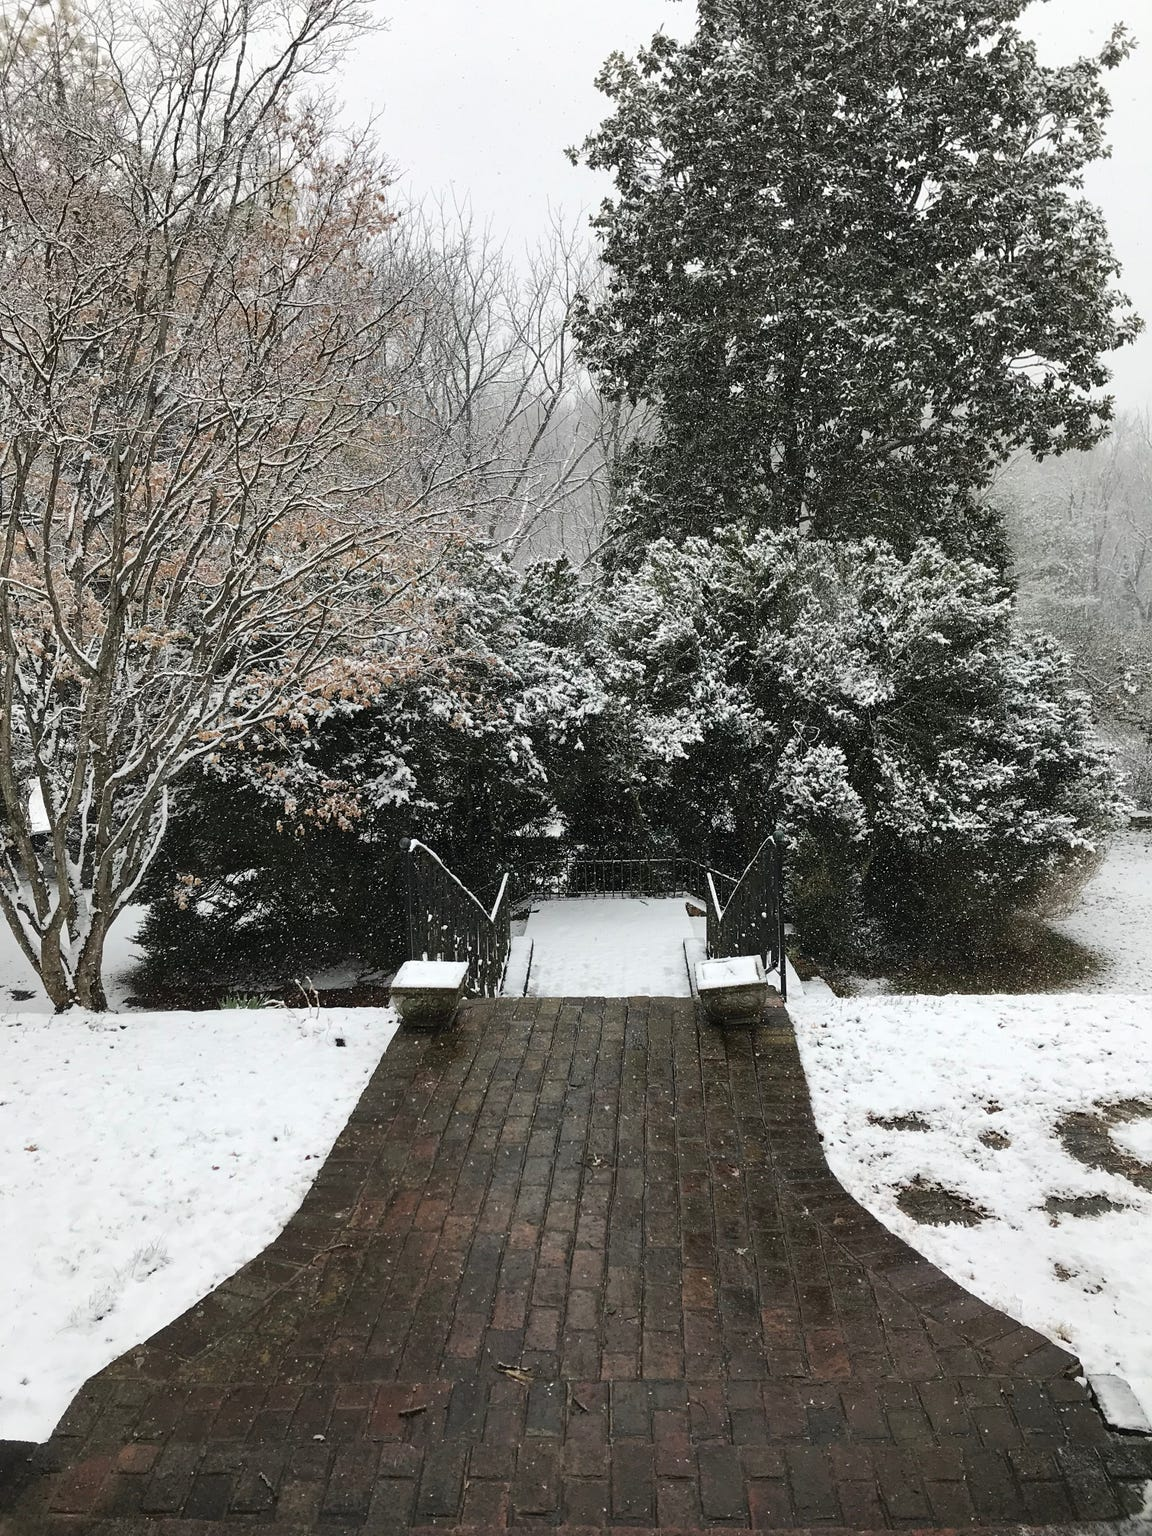 The stairs leading up to Dr. Robert Kyler's home in Staunton. Photographed on Friday, March 8, 2019.